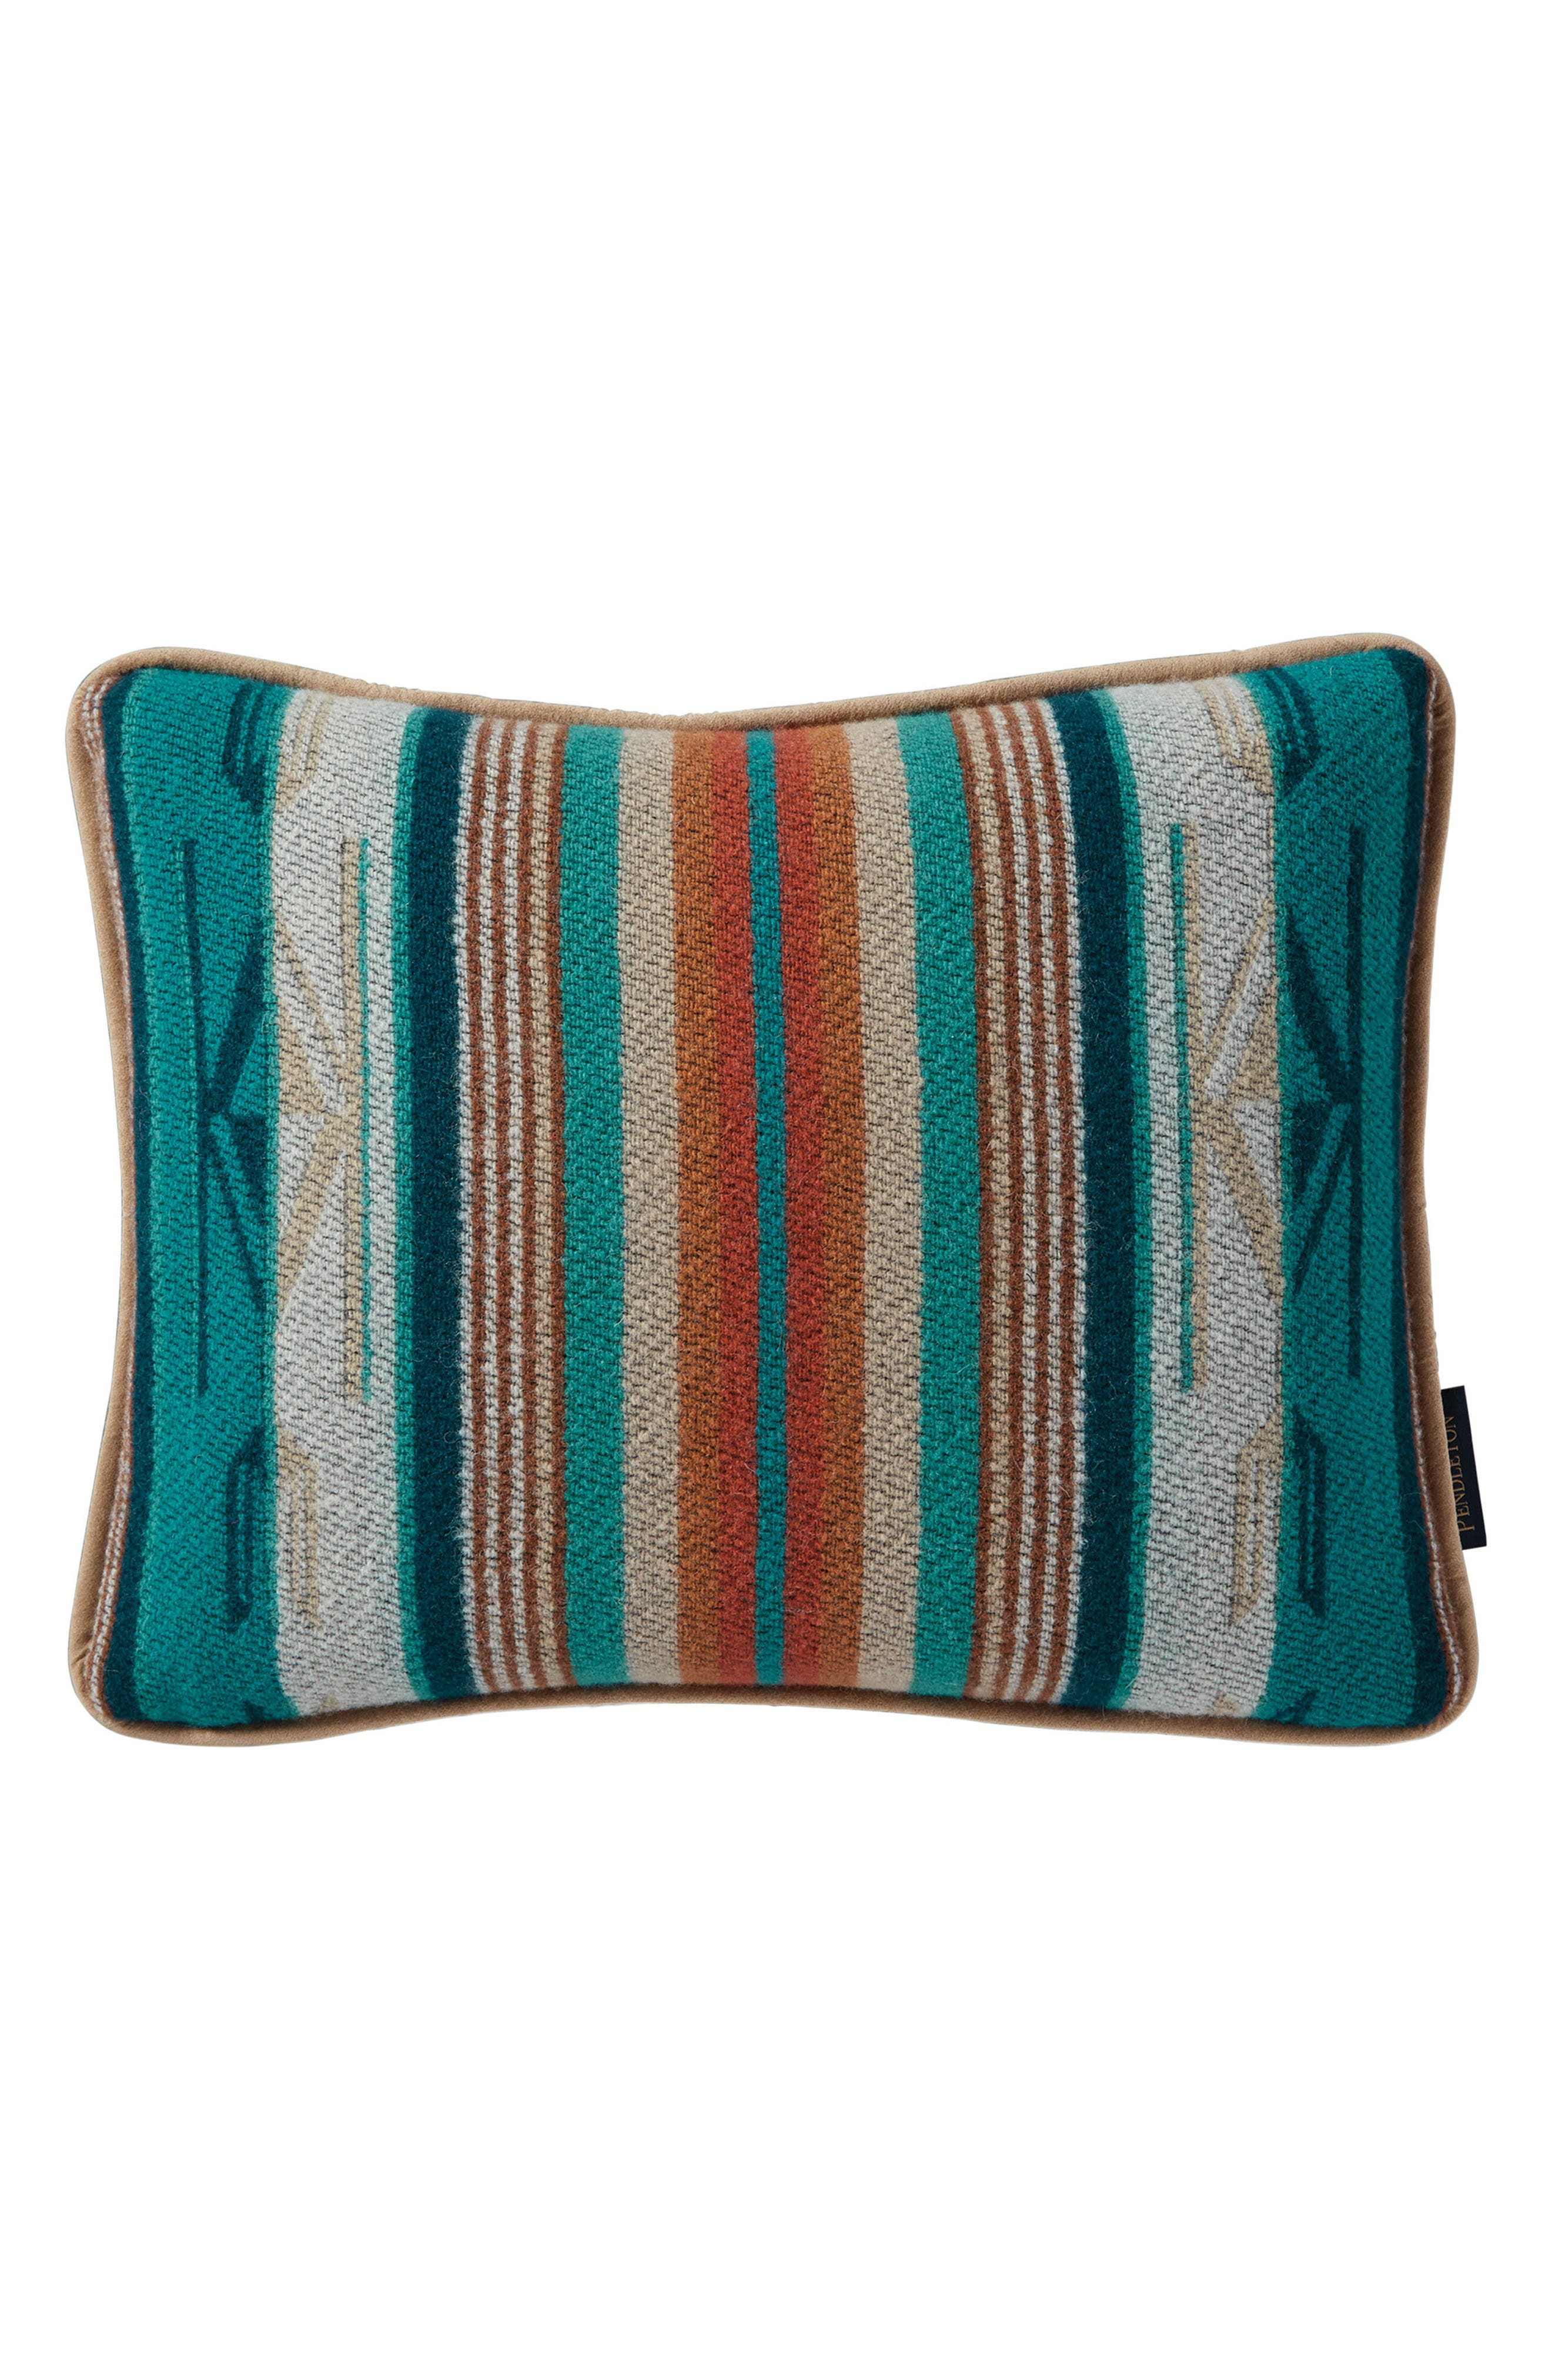 'Chimayo' Pillow,                         Main,                         color, Turquoise